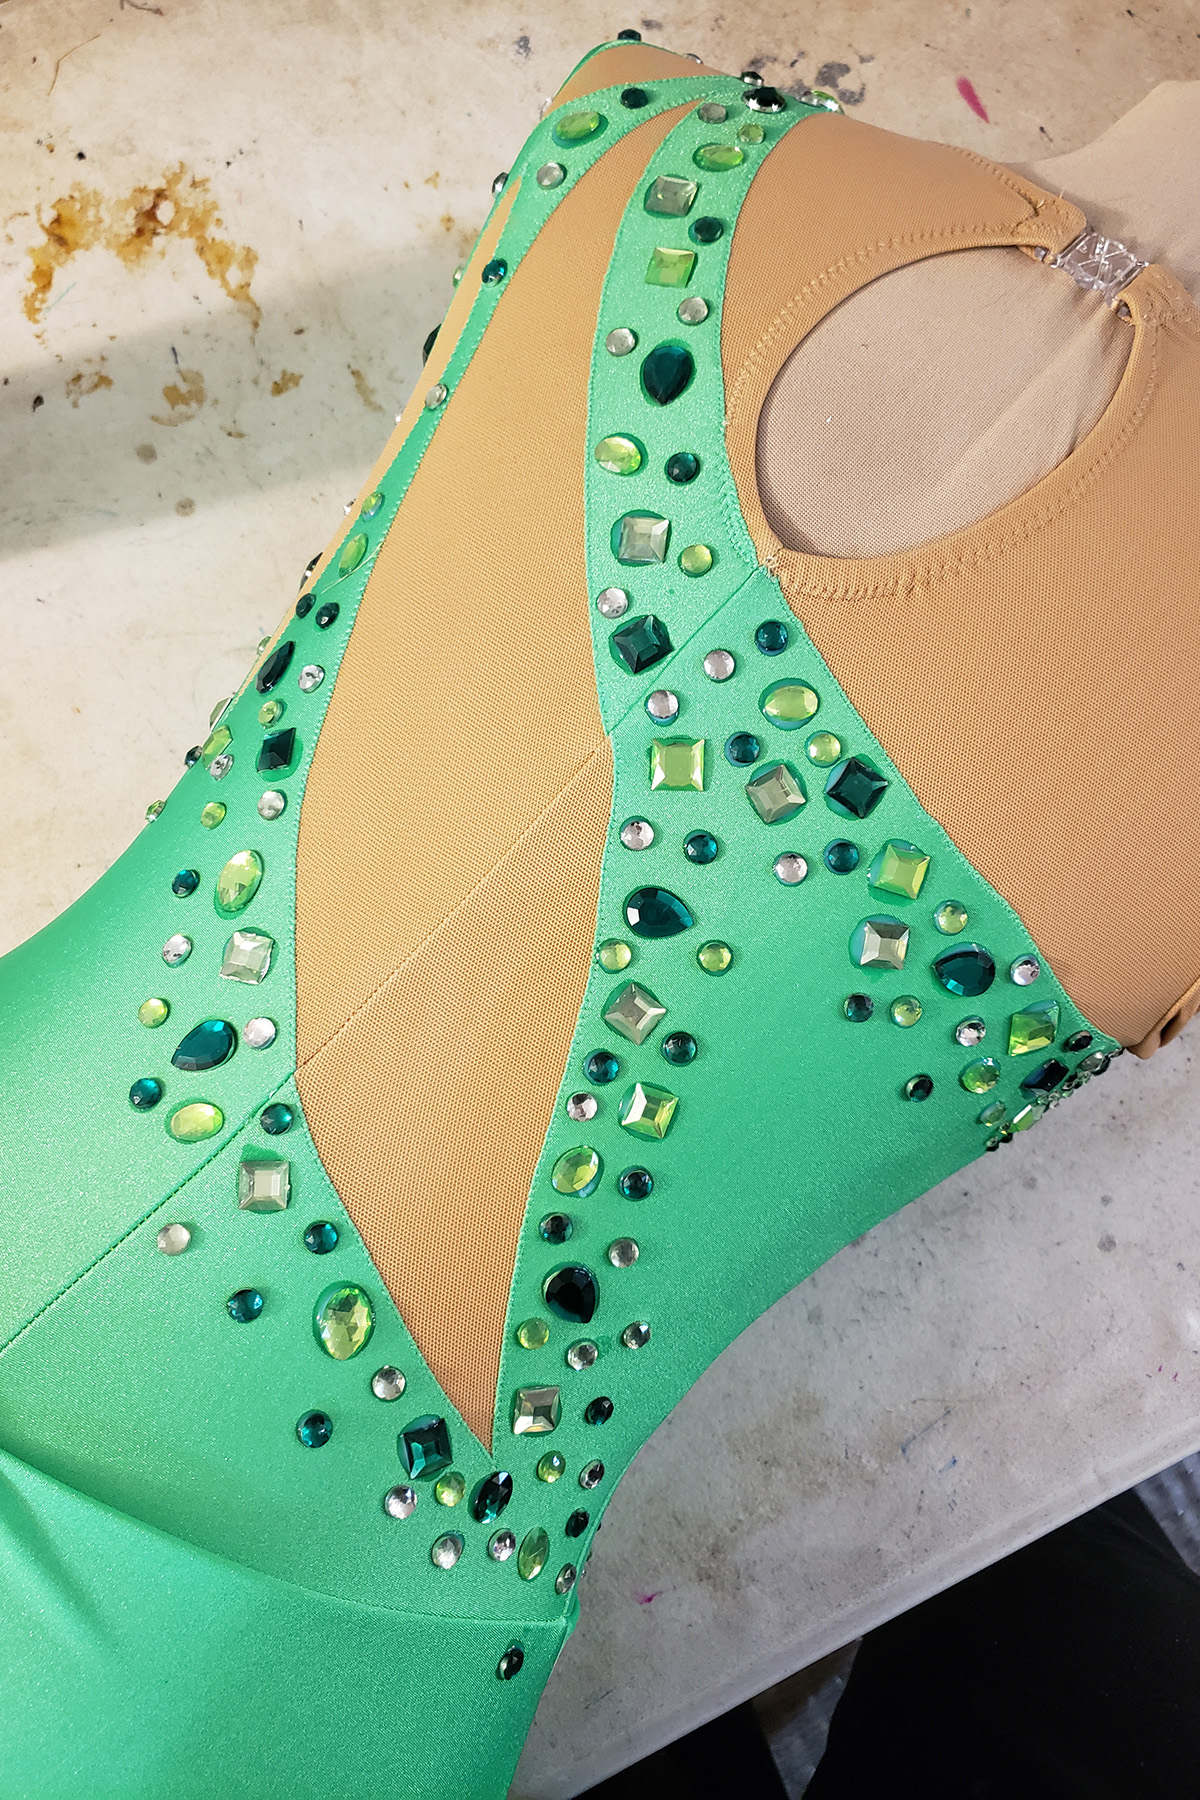 A green skating dress on a dress form, with large rhinestones glued on. The rhinestones are clear and various shades of green, in a variety of shapes.